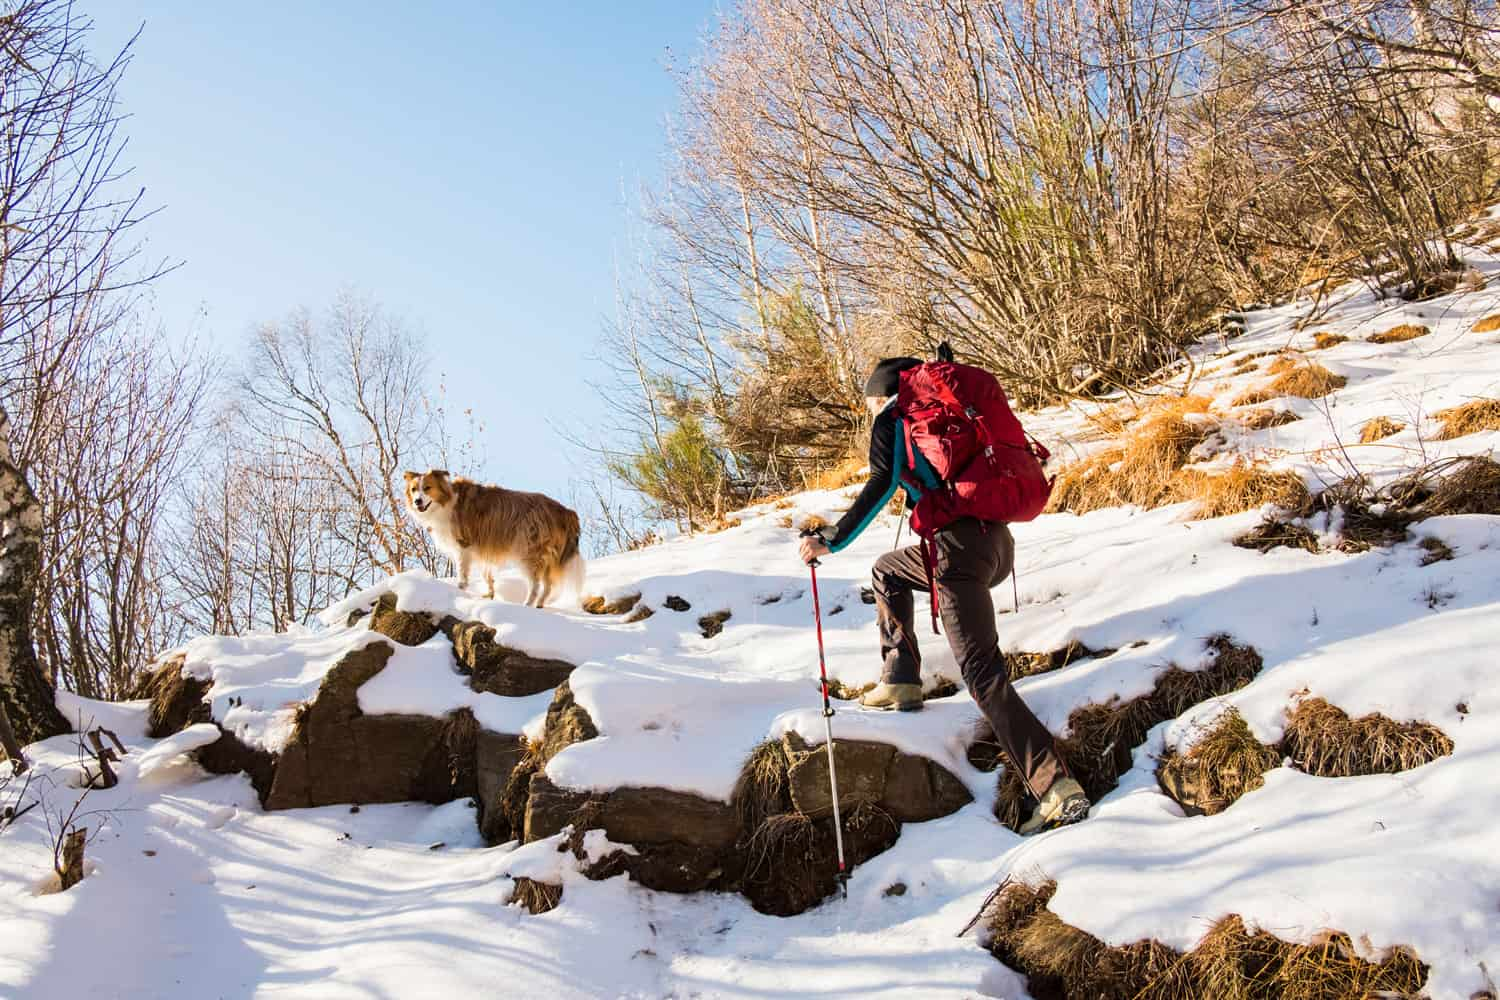 A fully geared hiker hiking a snowy mountain along with his dog